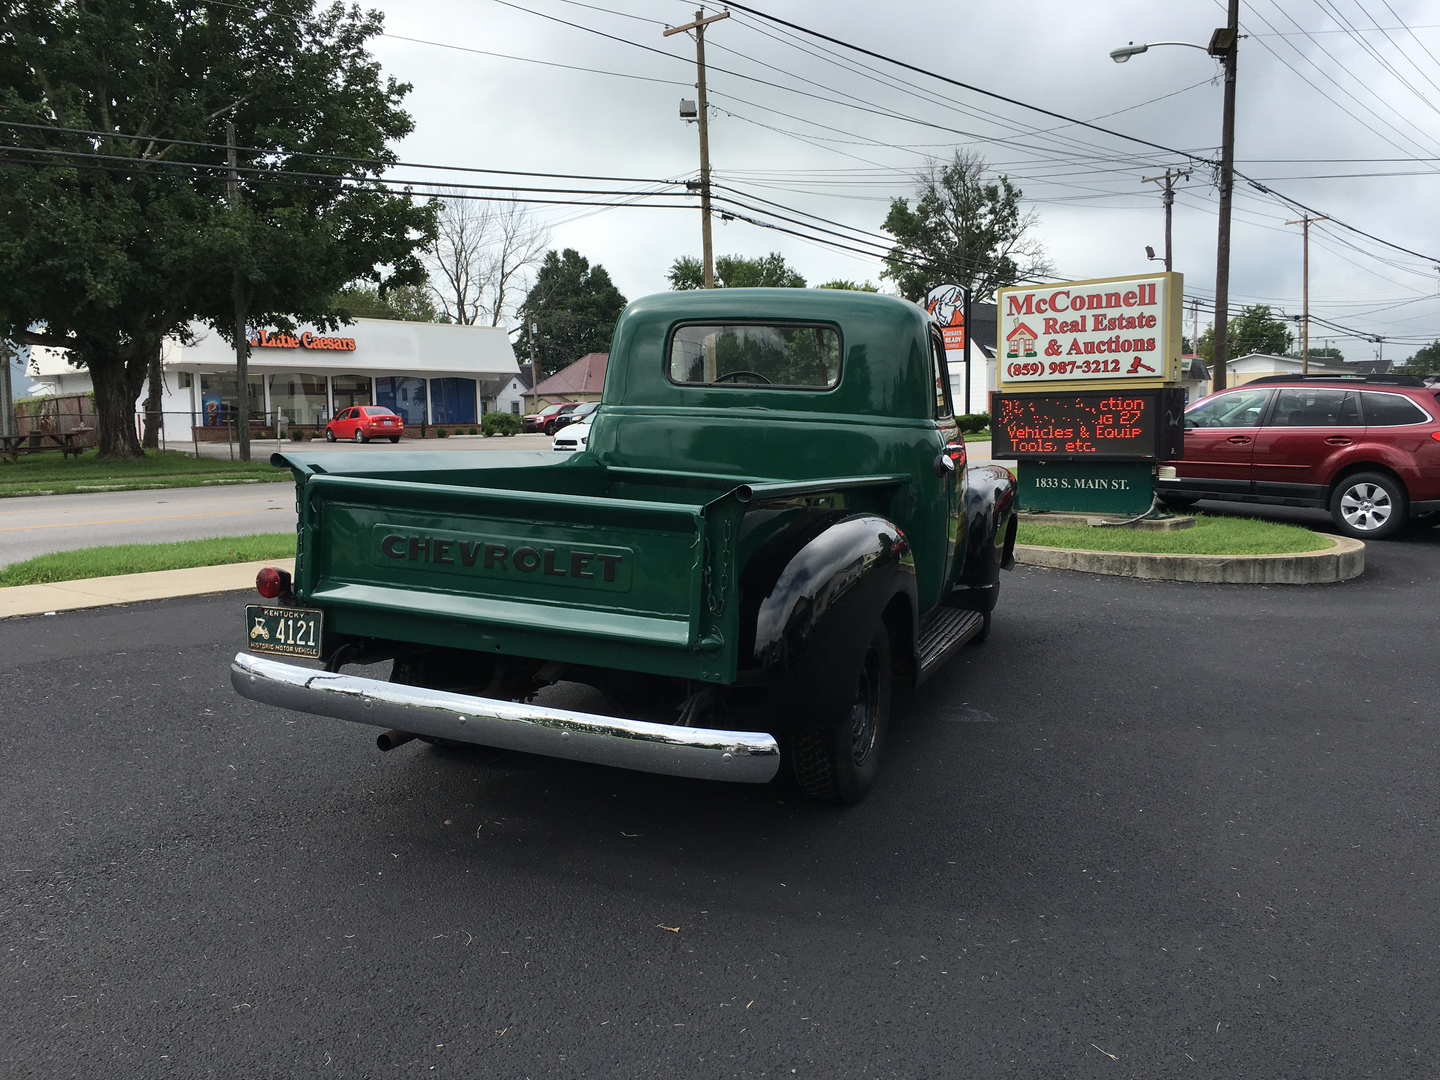 Absolute Auction August 27th 2016 Trucks Vehicles Suvs 1949 Chevy Step Van Long Rifle Percussion Cup W 1 2 Curly Maple Stock Semi Homemade From 1970s Kit Patch Box Octagonal Barrel